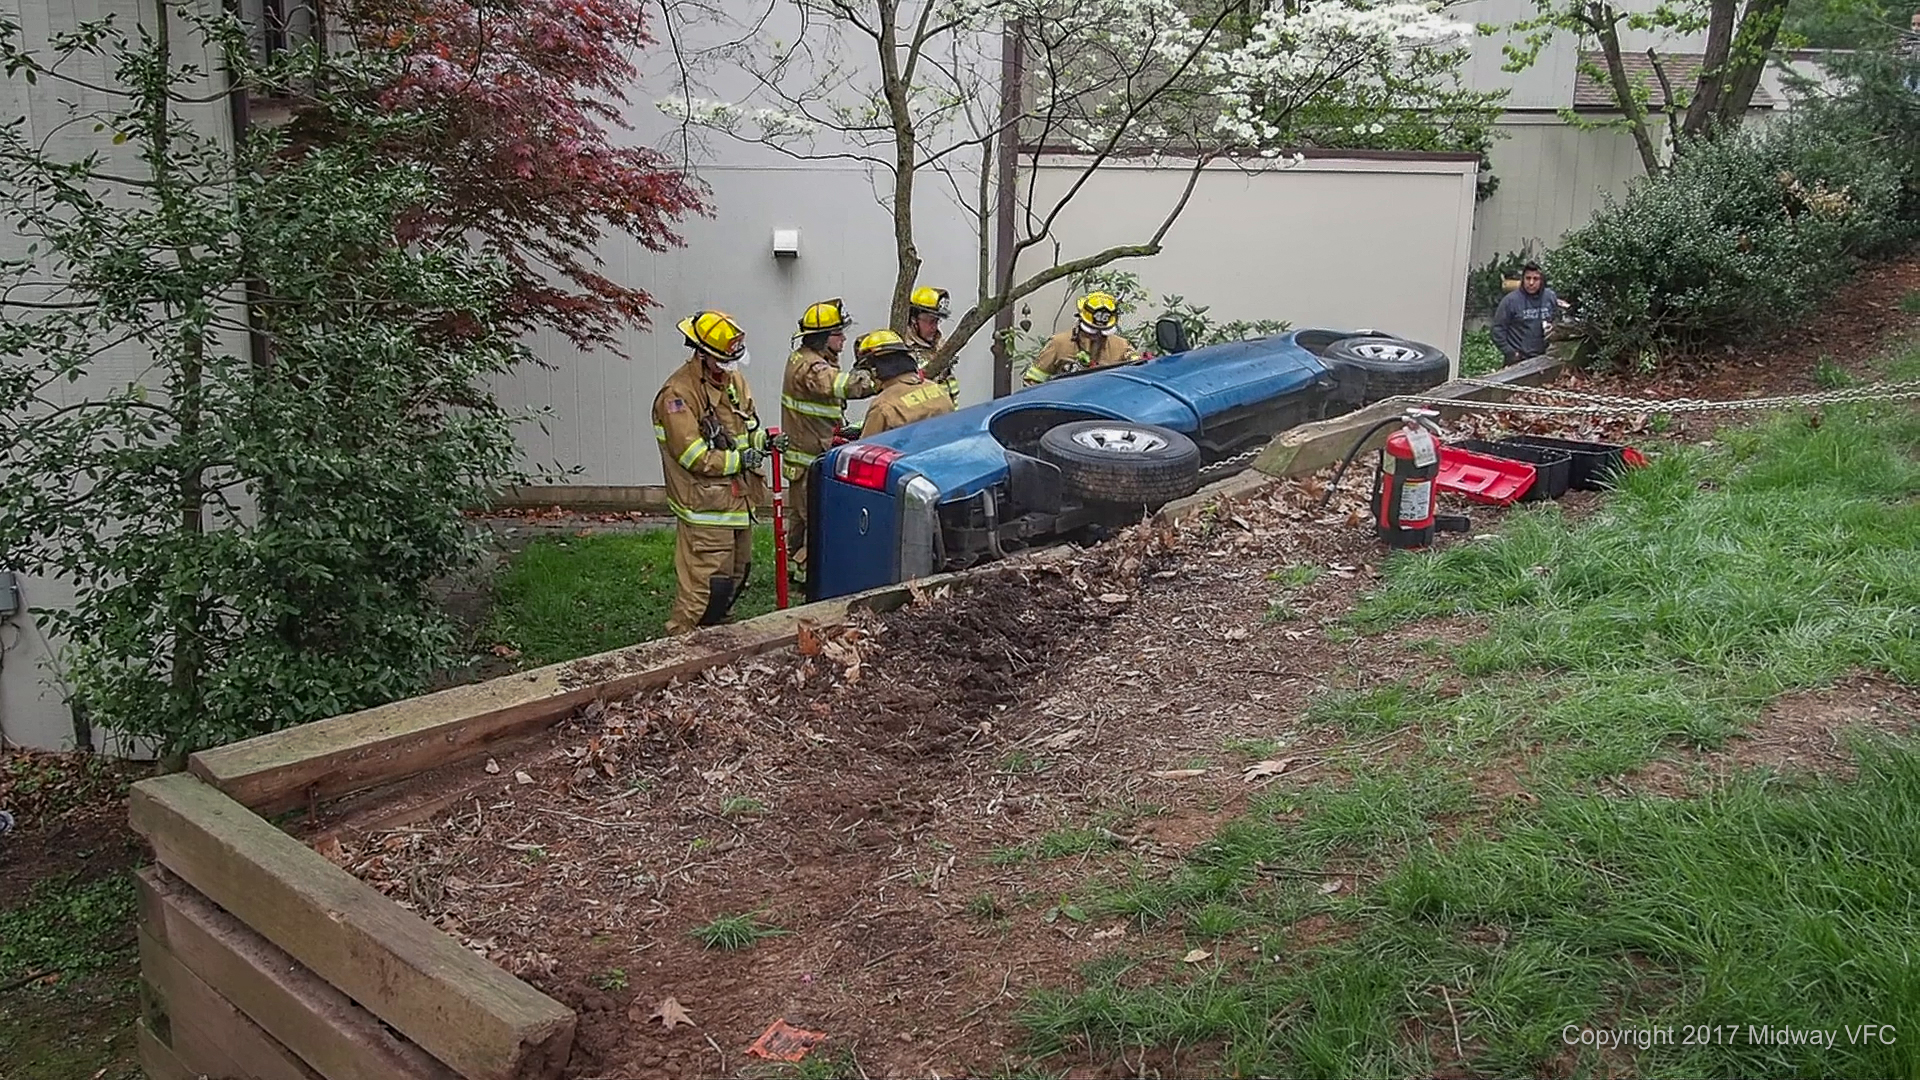 2017.04.25 at 2:37 PM - Rescue 5 from the Midway Volunteer Fire Company responded to a Mutual Aid Request (support) by Eagle Volunteer Fire Company to assist in an auto extrication in New Hope Borough. The vehicle was stabilized and its occupant was safely removed and transported to an area hospital. The cause of the mishap is under investigation.